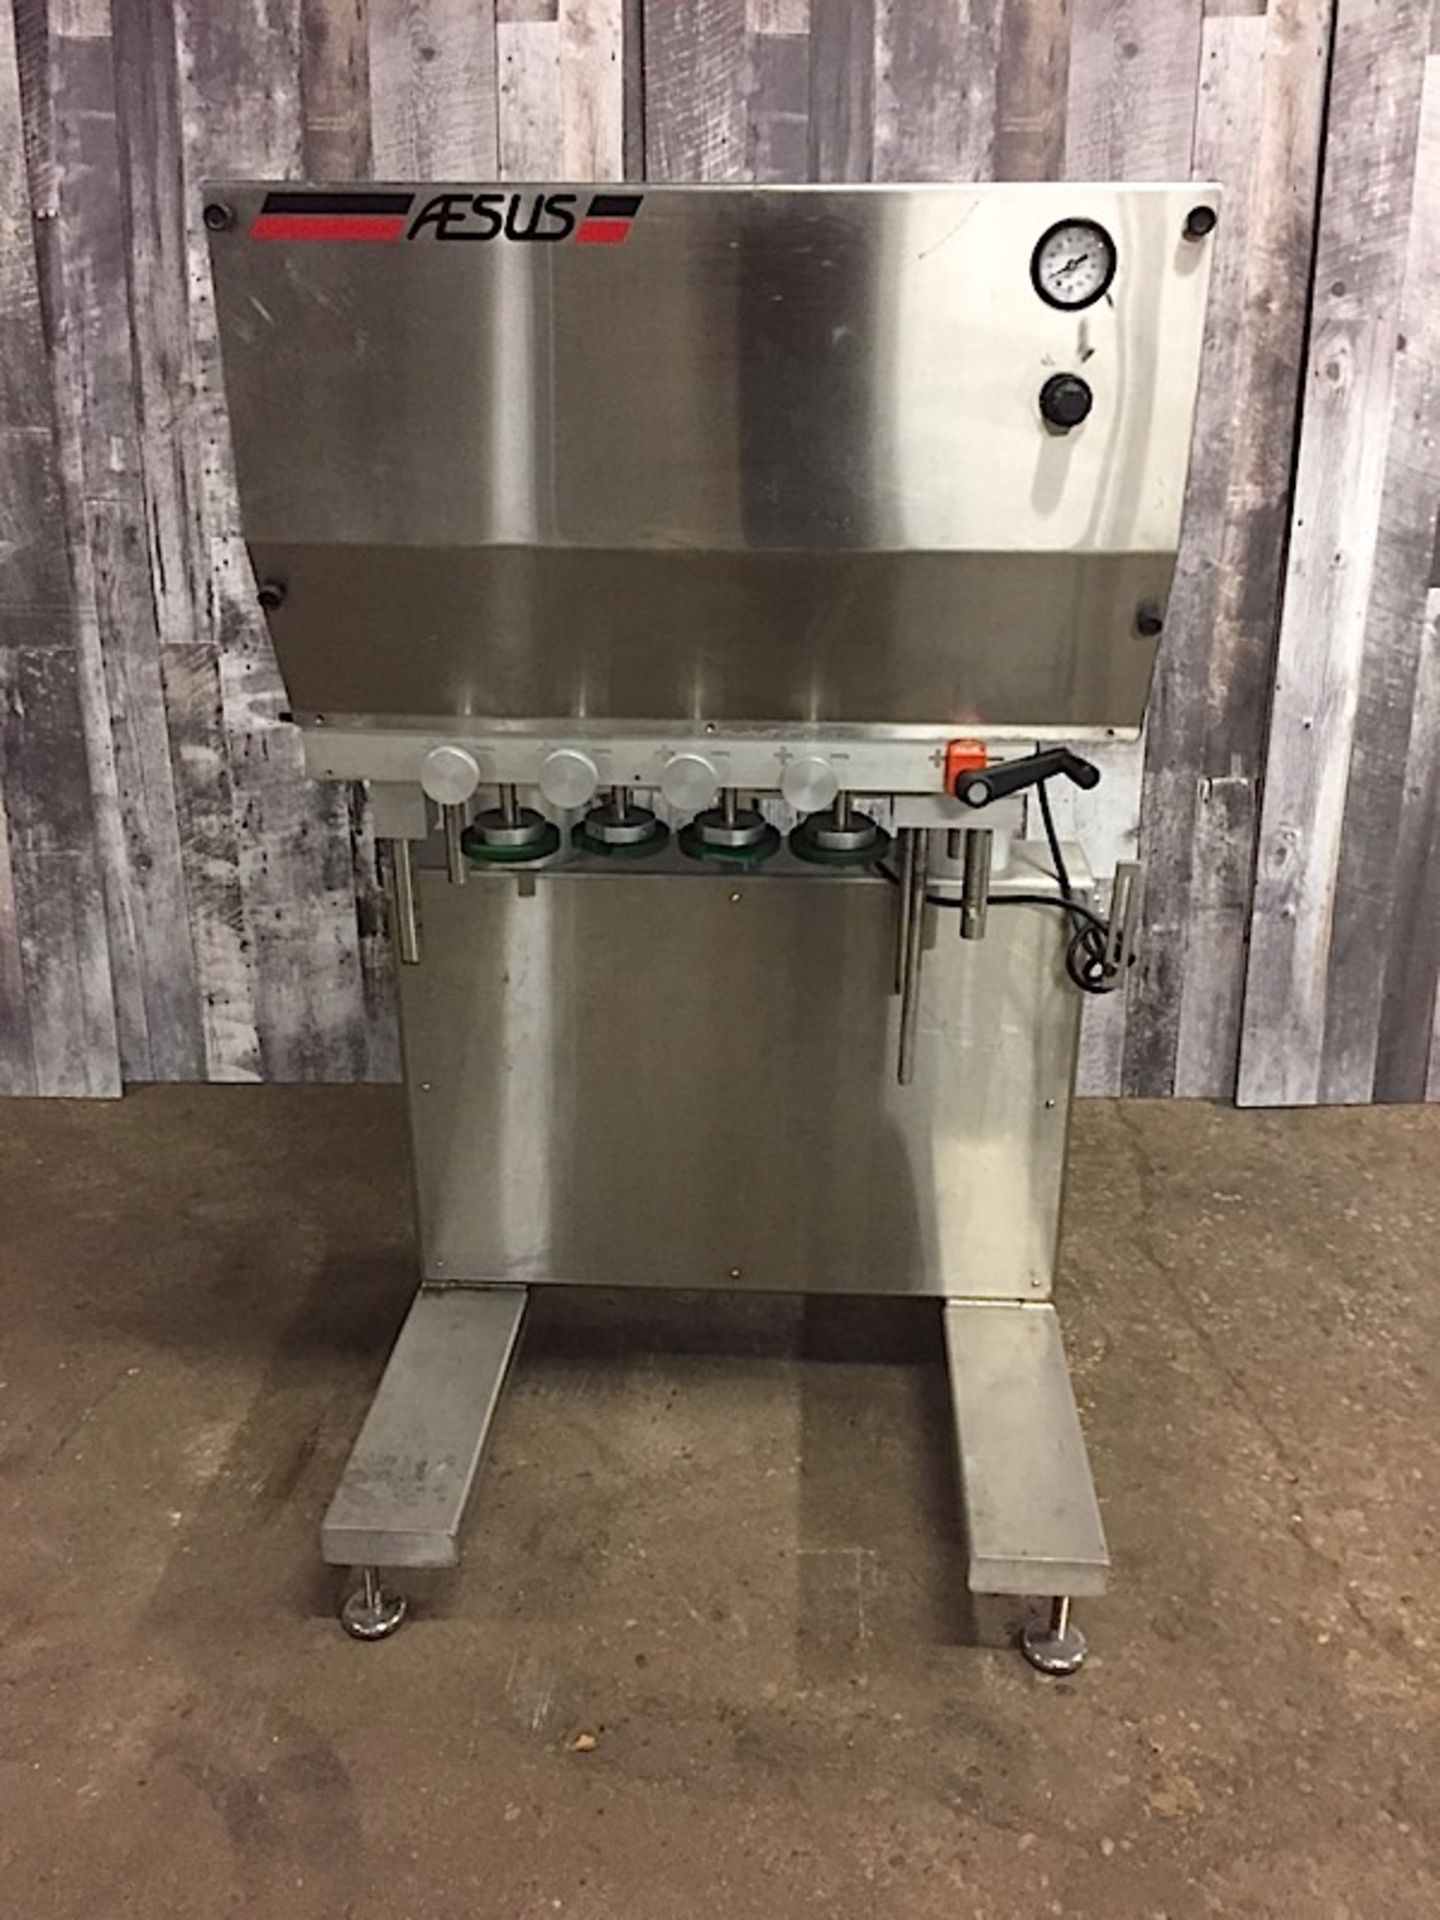 Lot 26 - AESUS CAP INDUCTION SEALERFULL STAINLESS STEEL CLADDING ON A FULLY WELDED STAINLESS STEEL TUBULAR